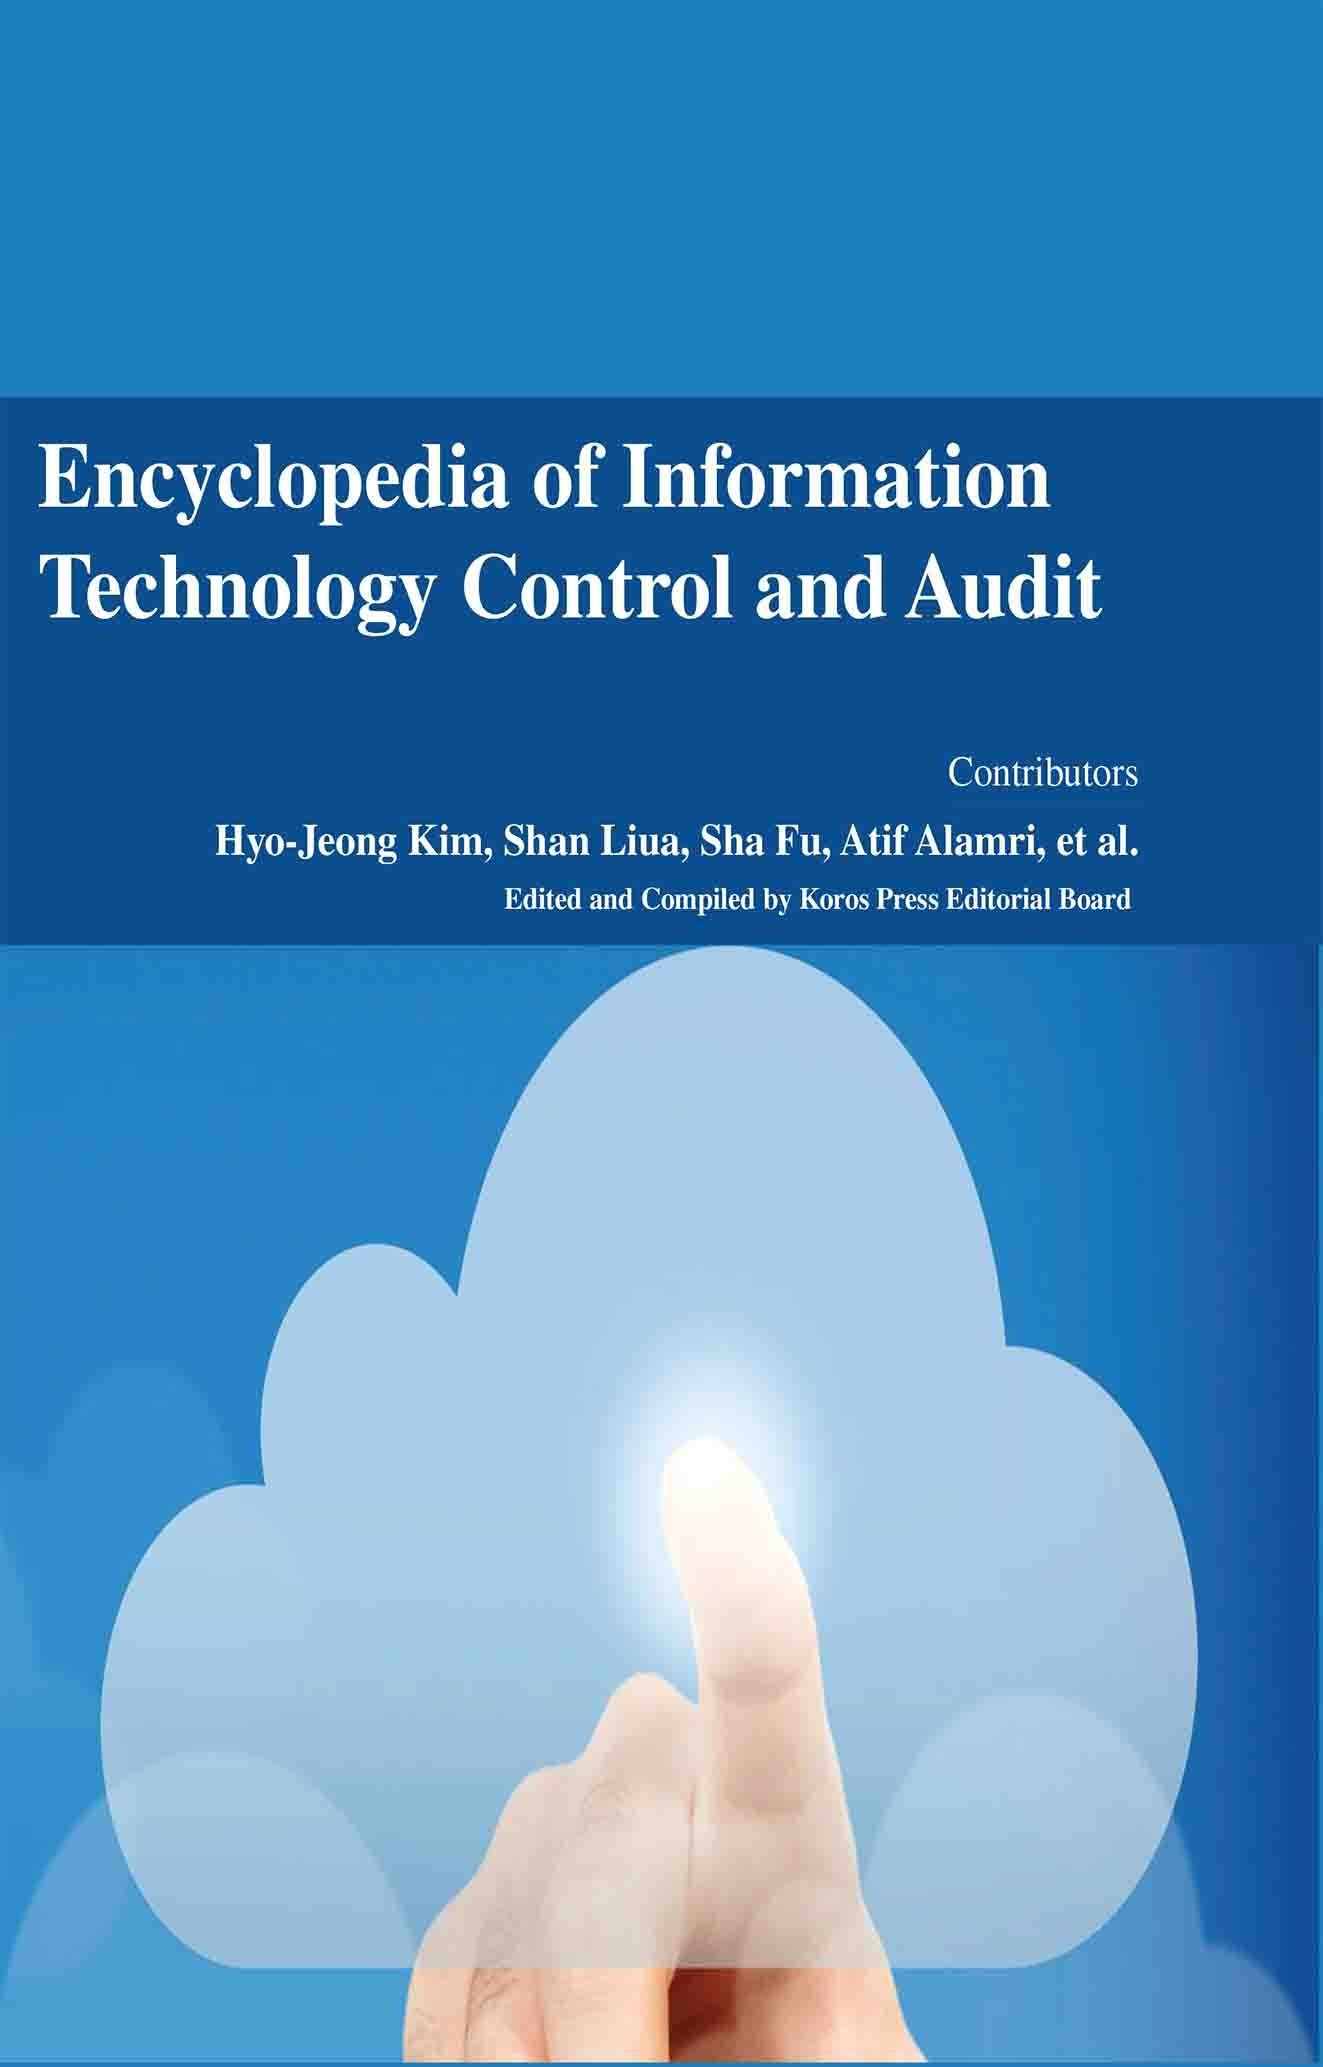 Encyclopaedia of Information Technology Control and Audit (4 Volumes) pdf